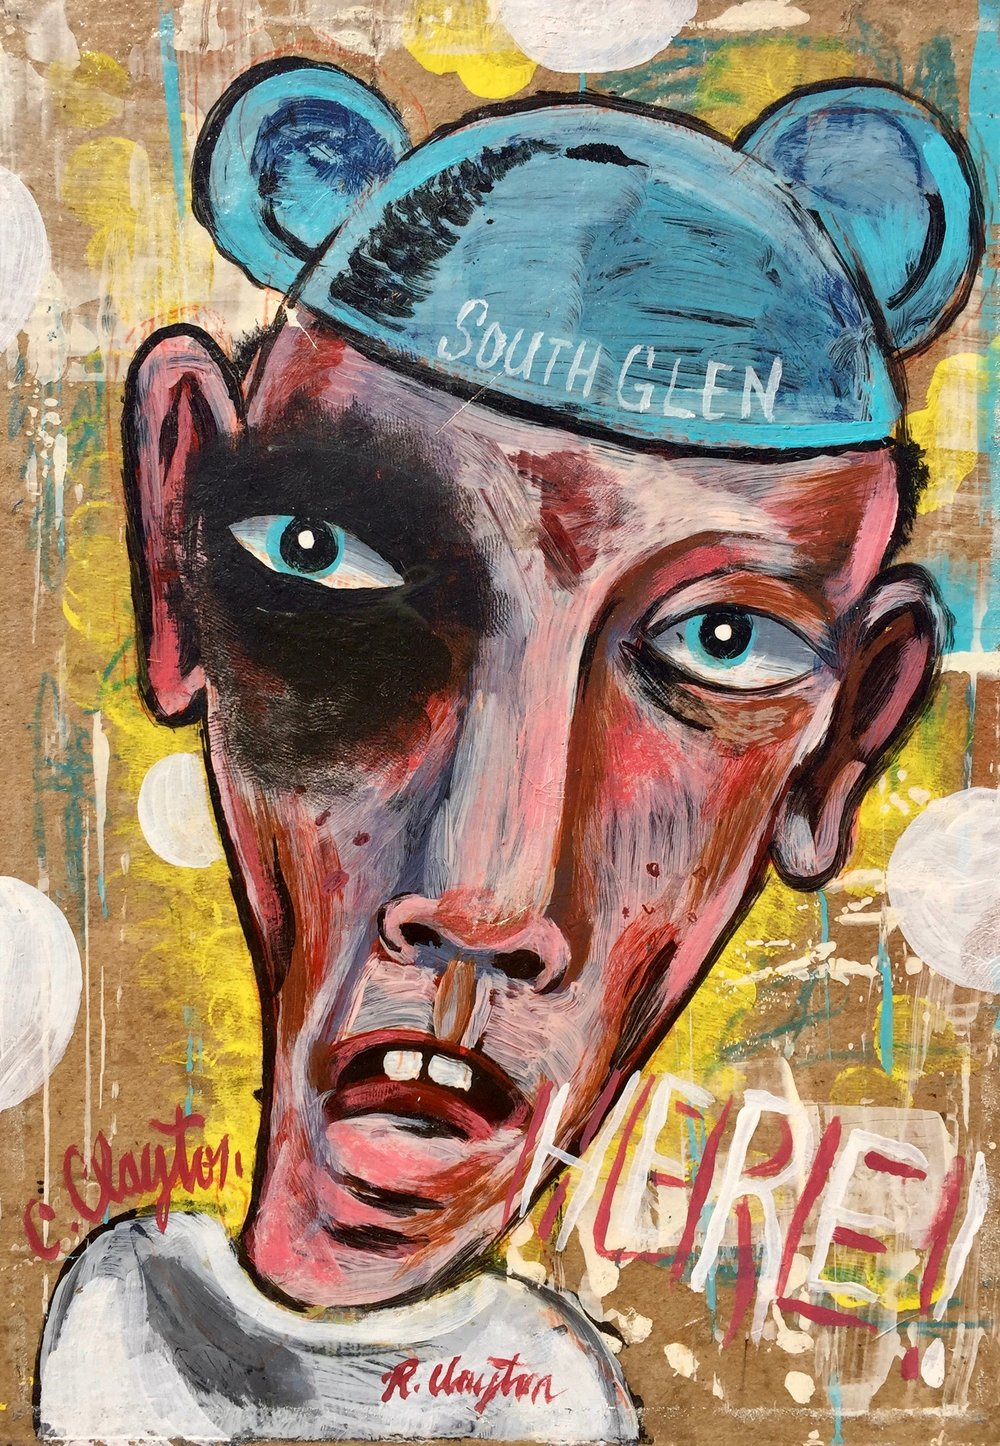 South Glen    Mixed media on wood panel  2002  10 x 13.5 In  $1,000.00